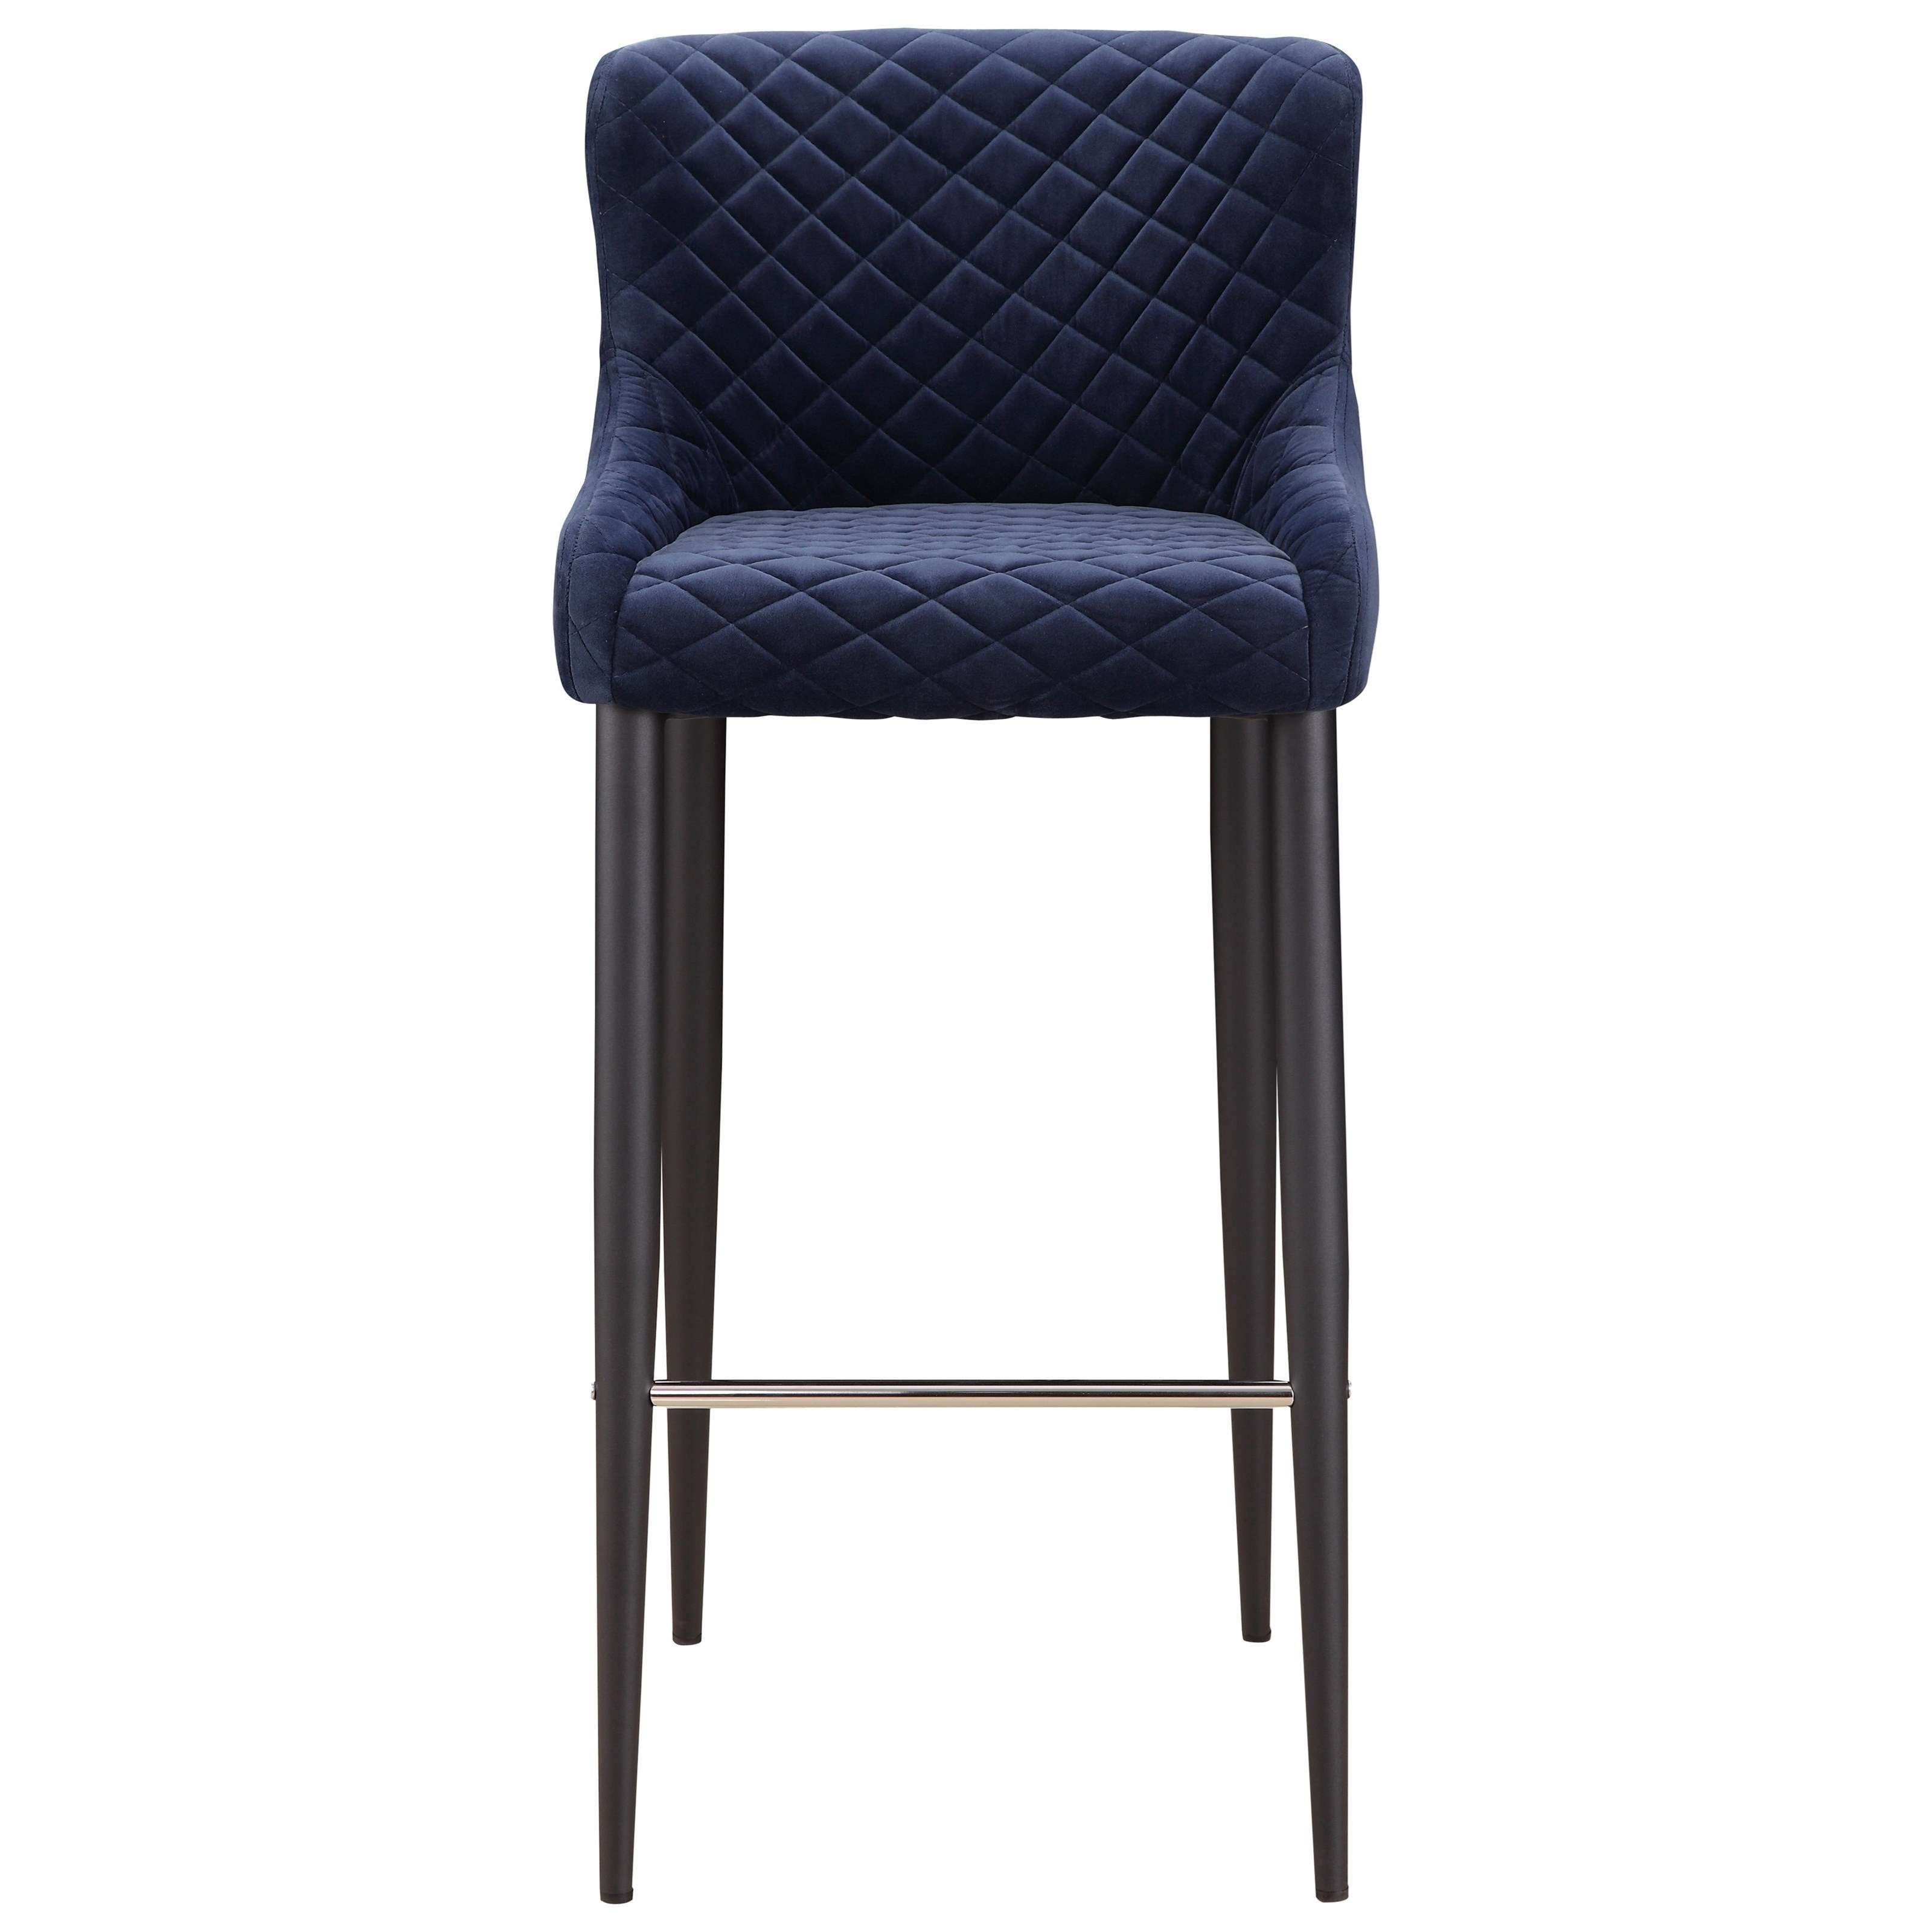 Etta Bar Stool by Moe's Home Collection at Stoney Creek Furniture